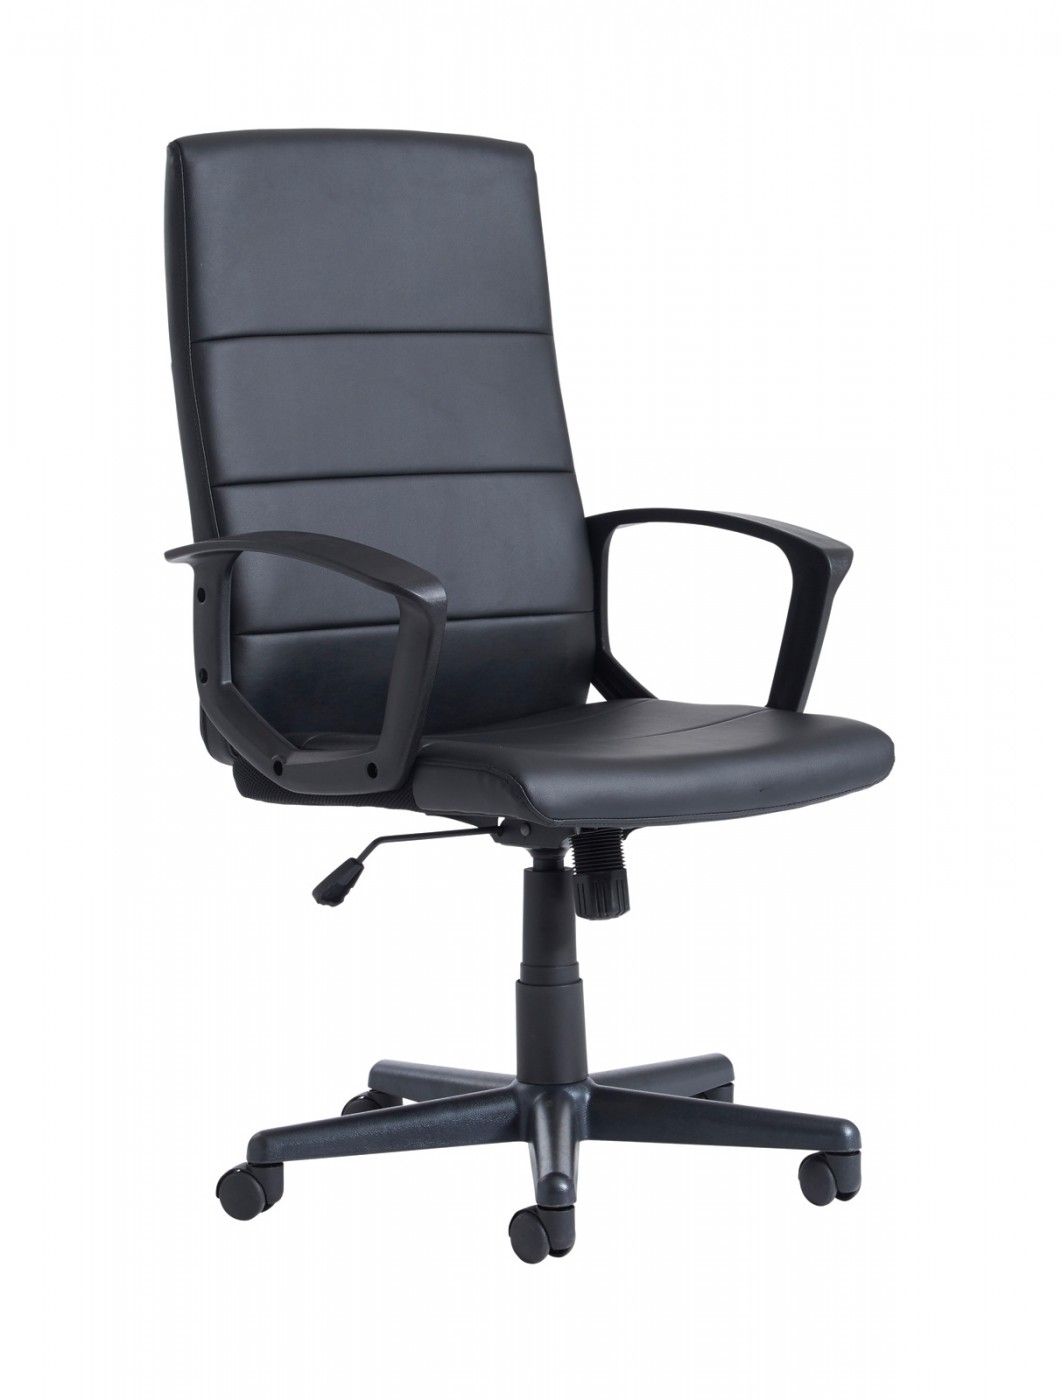 Dams Ascona High Back Managers Chair ASC300T1